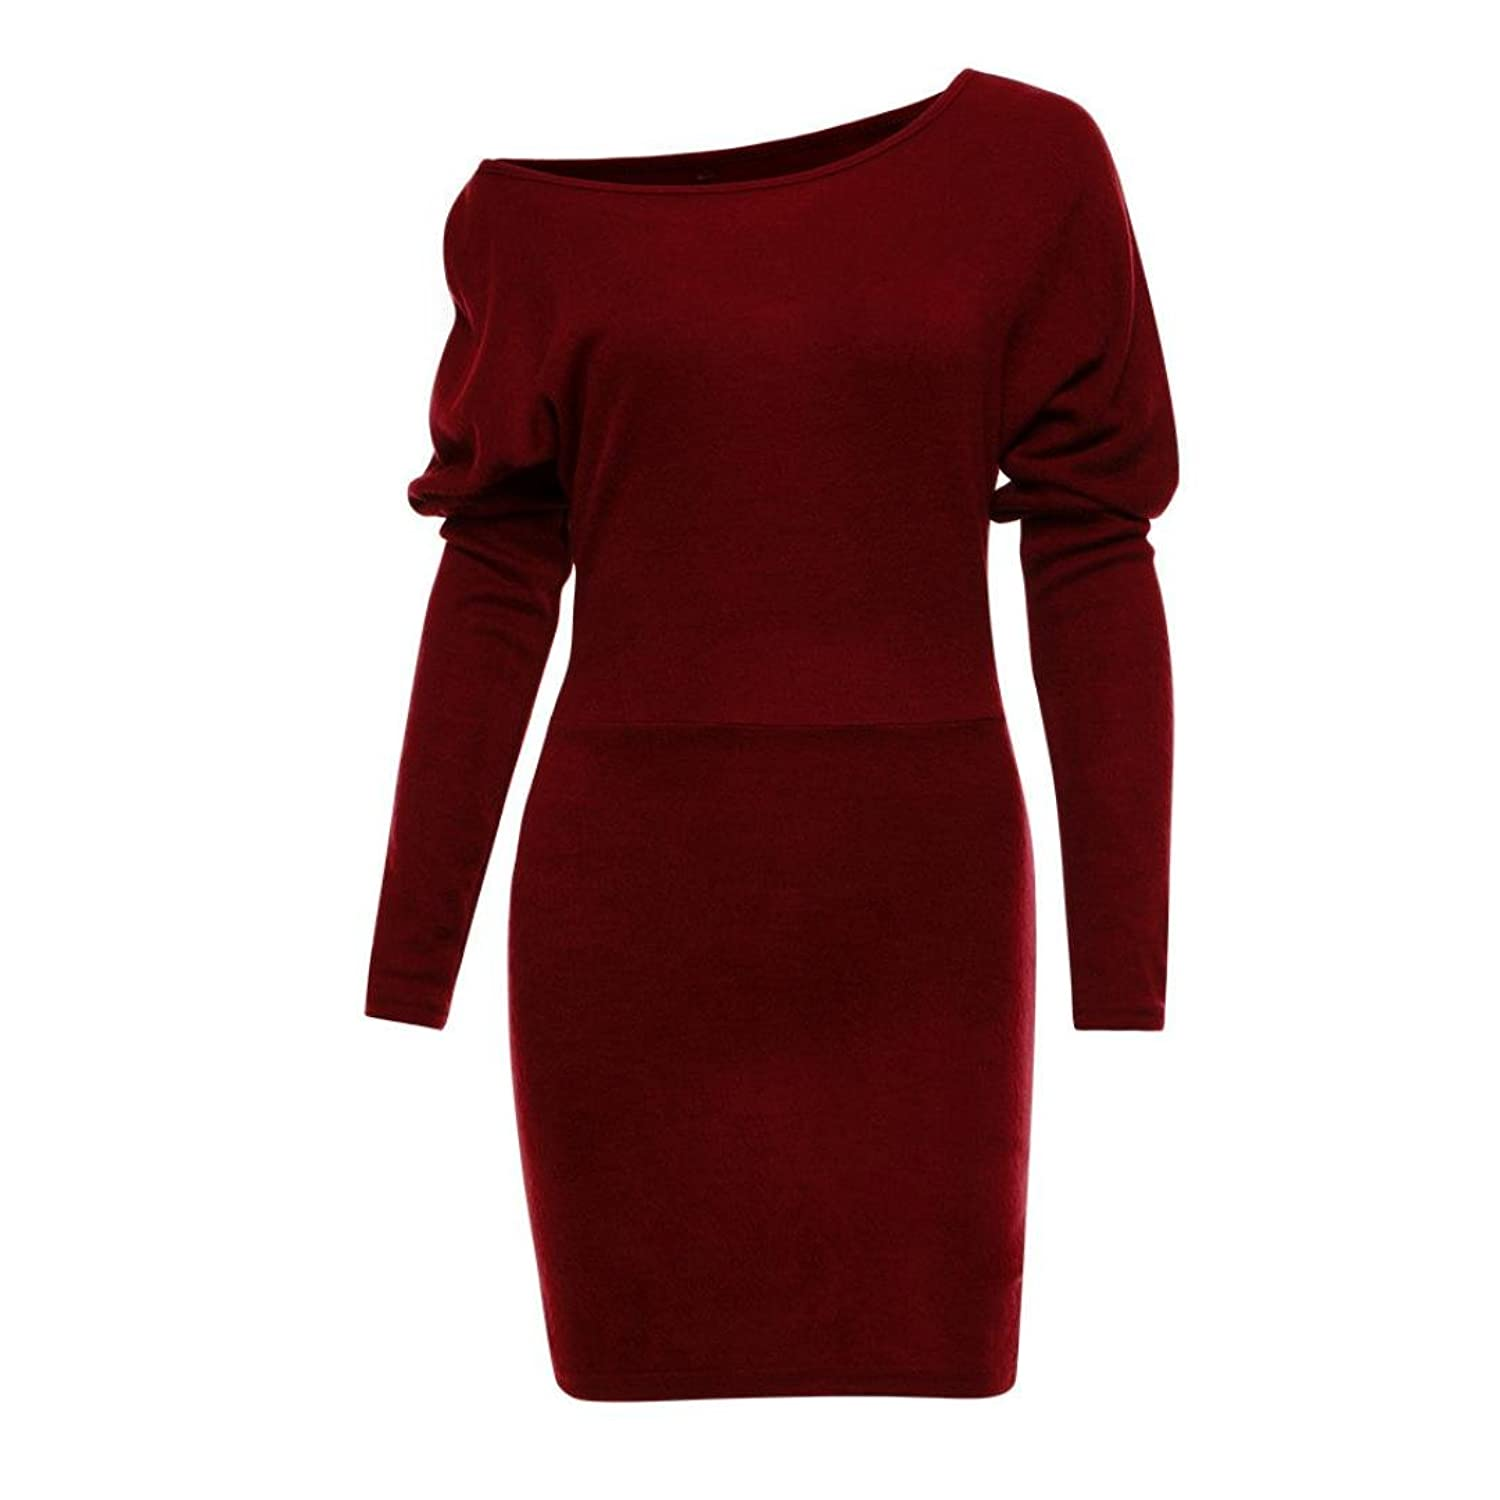 JUNKE Womens Sexy Bat Sleeve Bodycon Dress